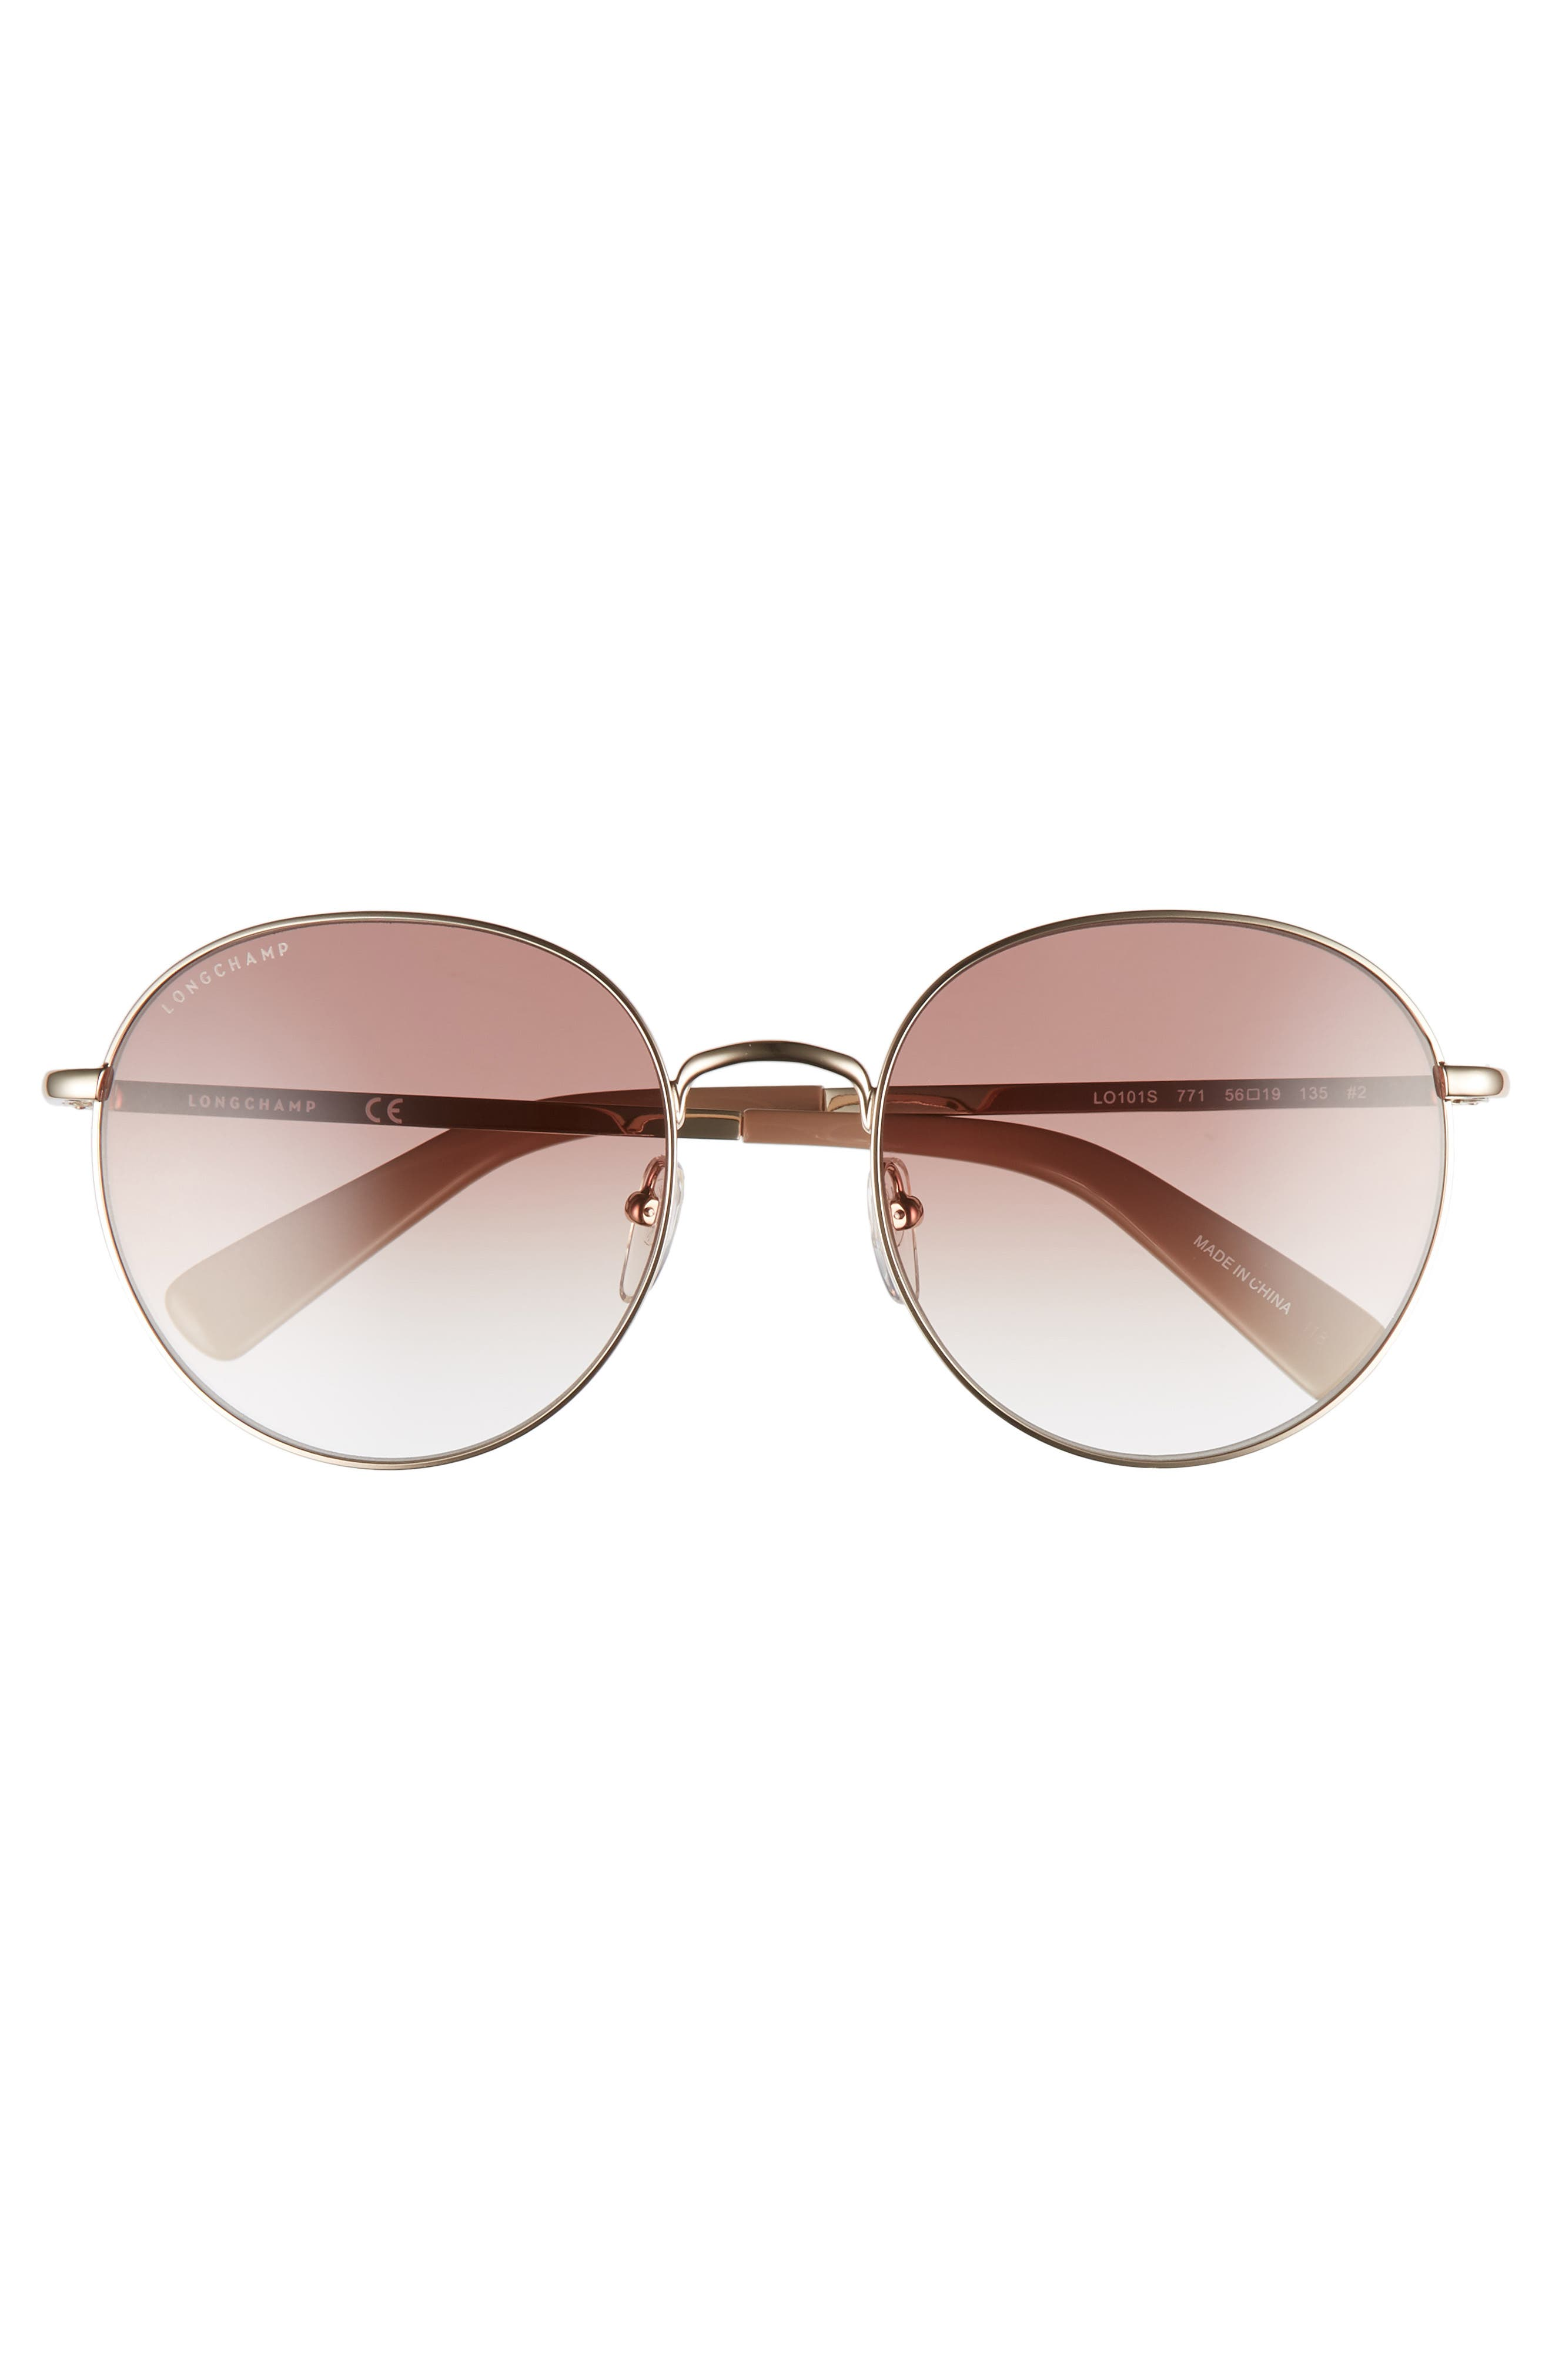 56mm Round Sunglasses,                             Alternate thumbnail 3, color,                             ROSE GOLD/ NUDE